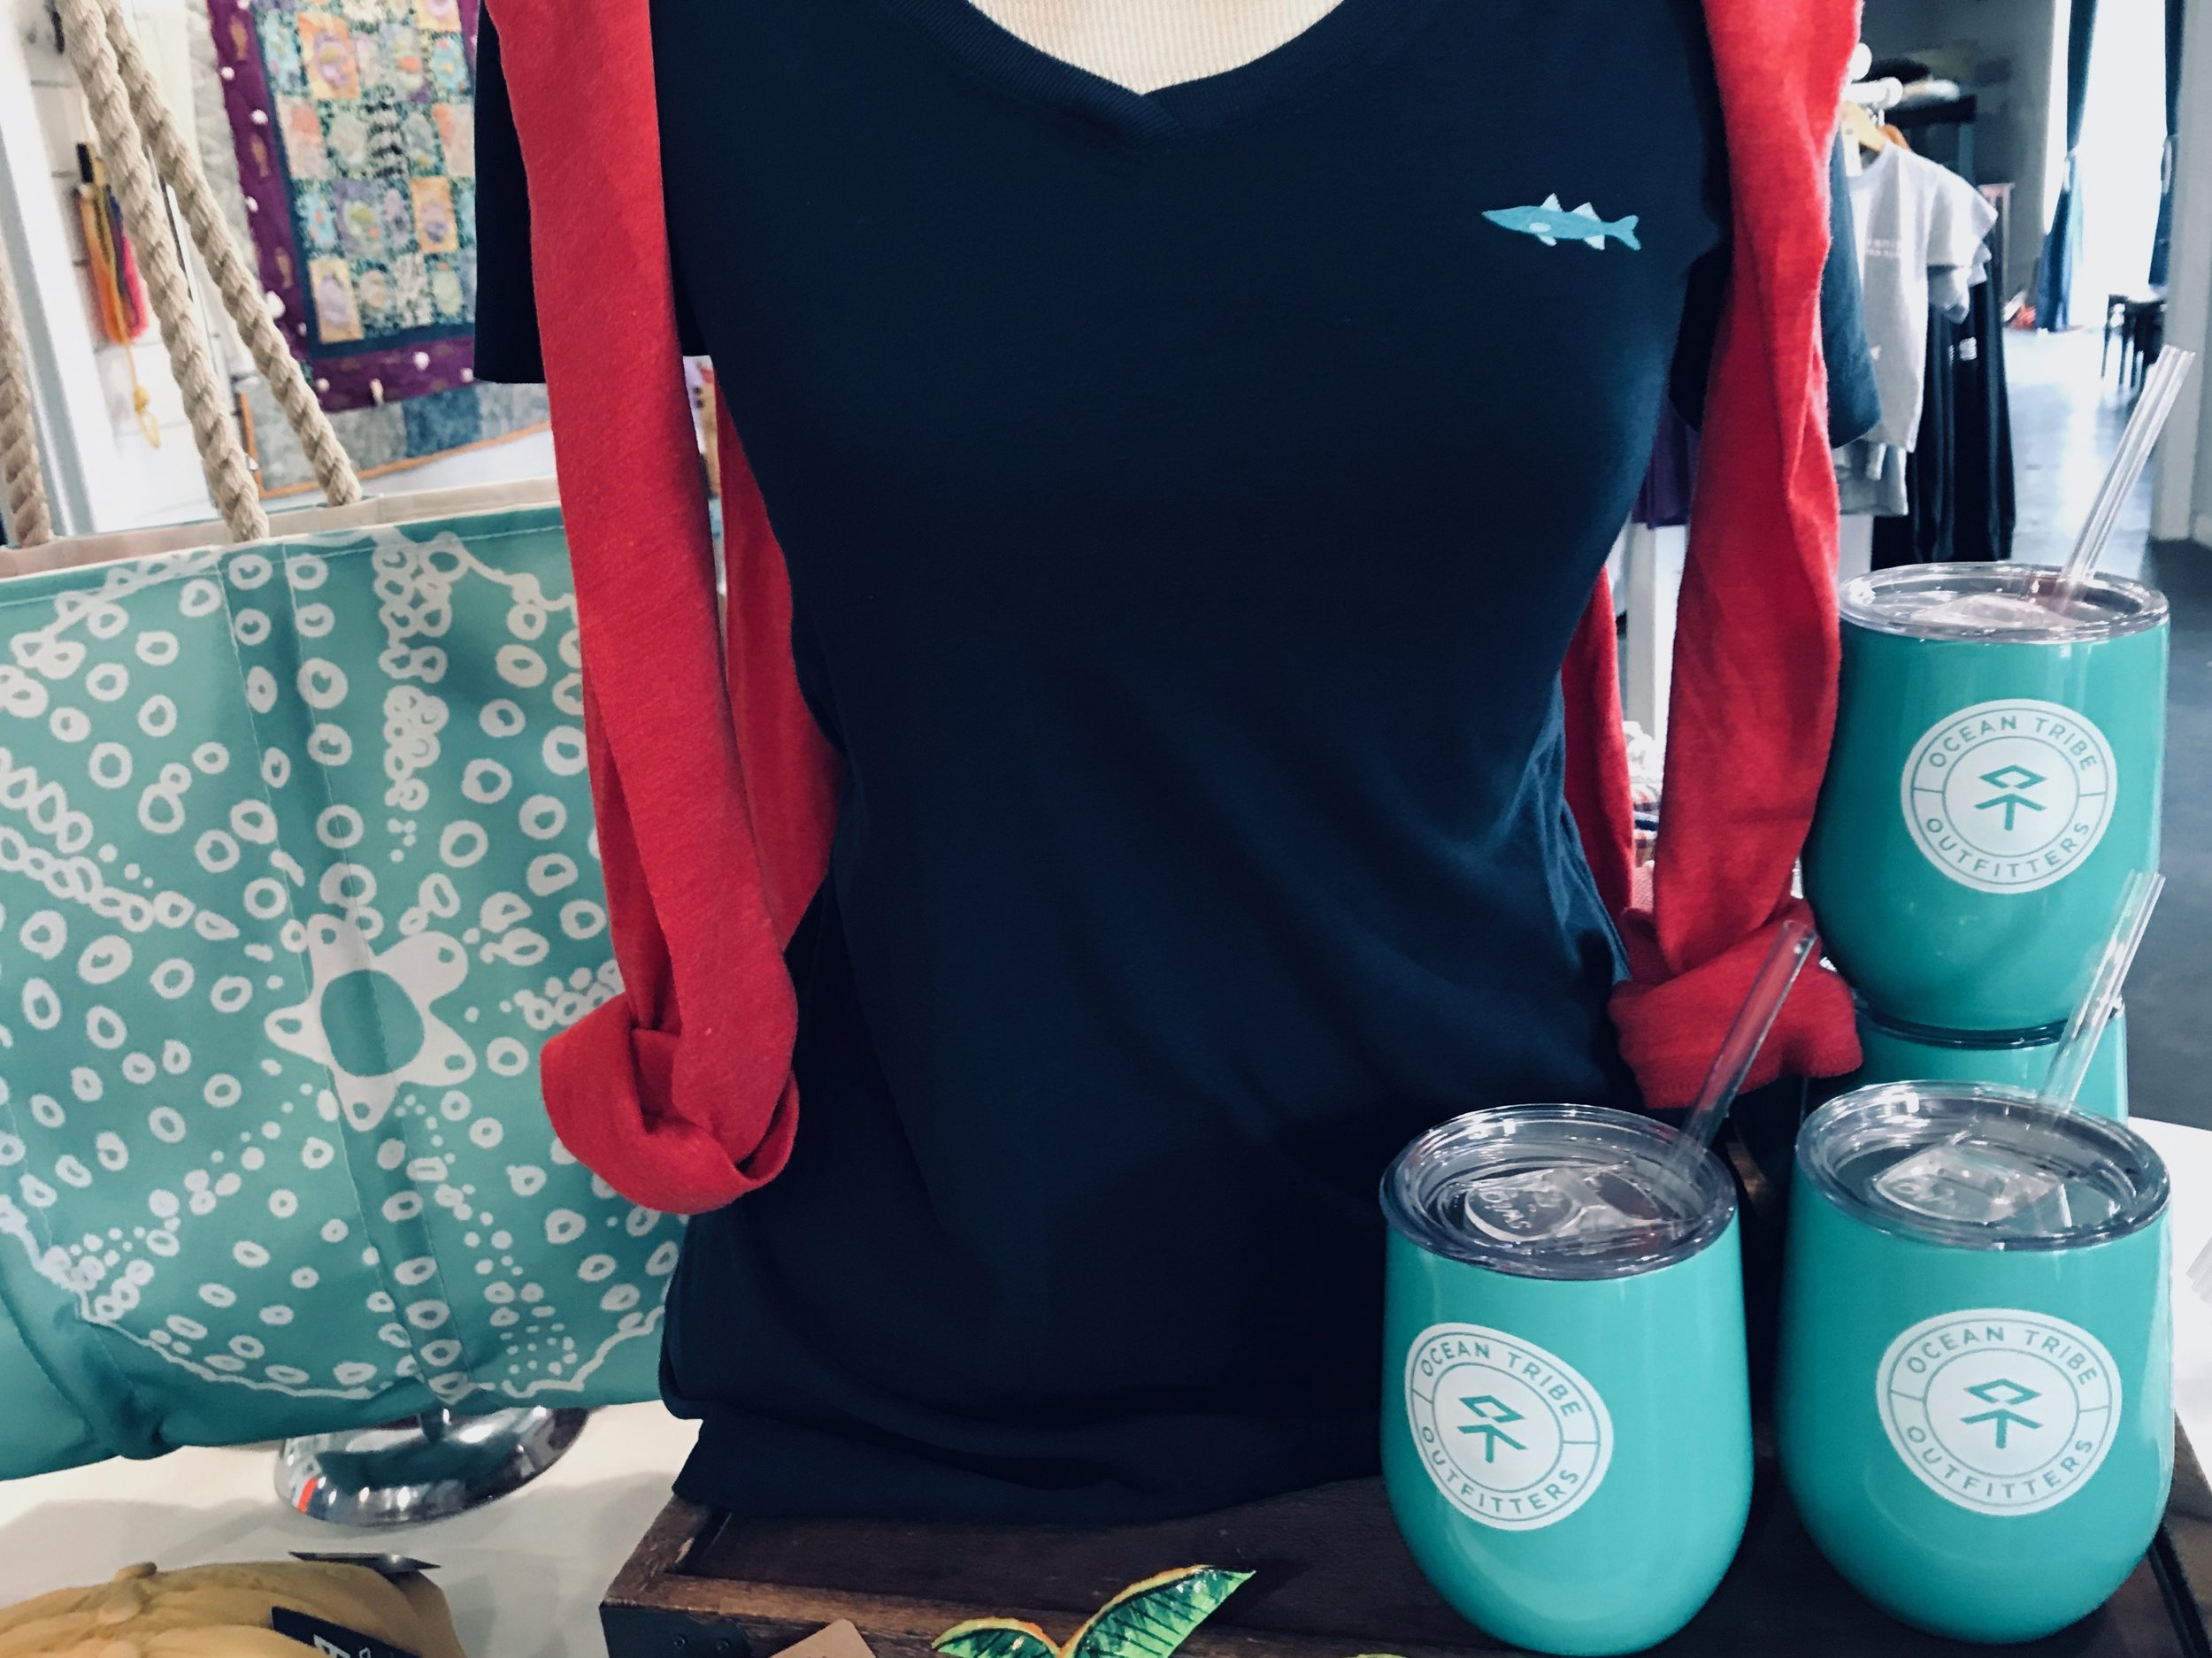 Insulated reusable cups are perfect for sipping your favorite beverage on the boat or beach.